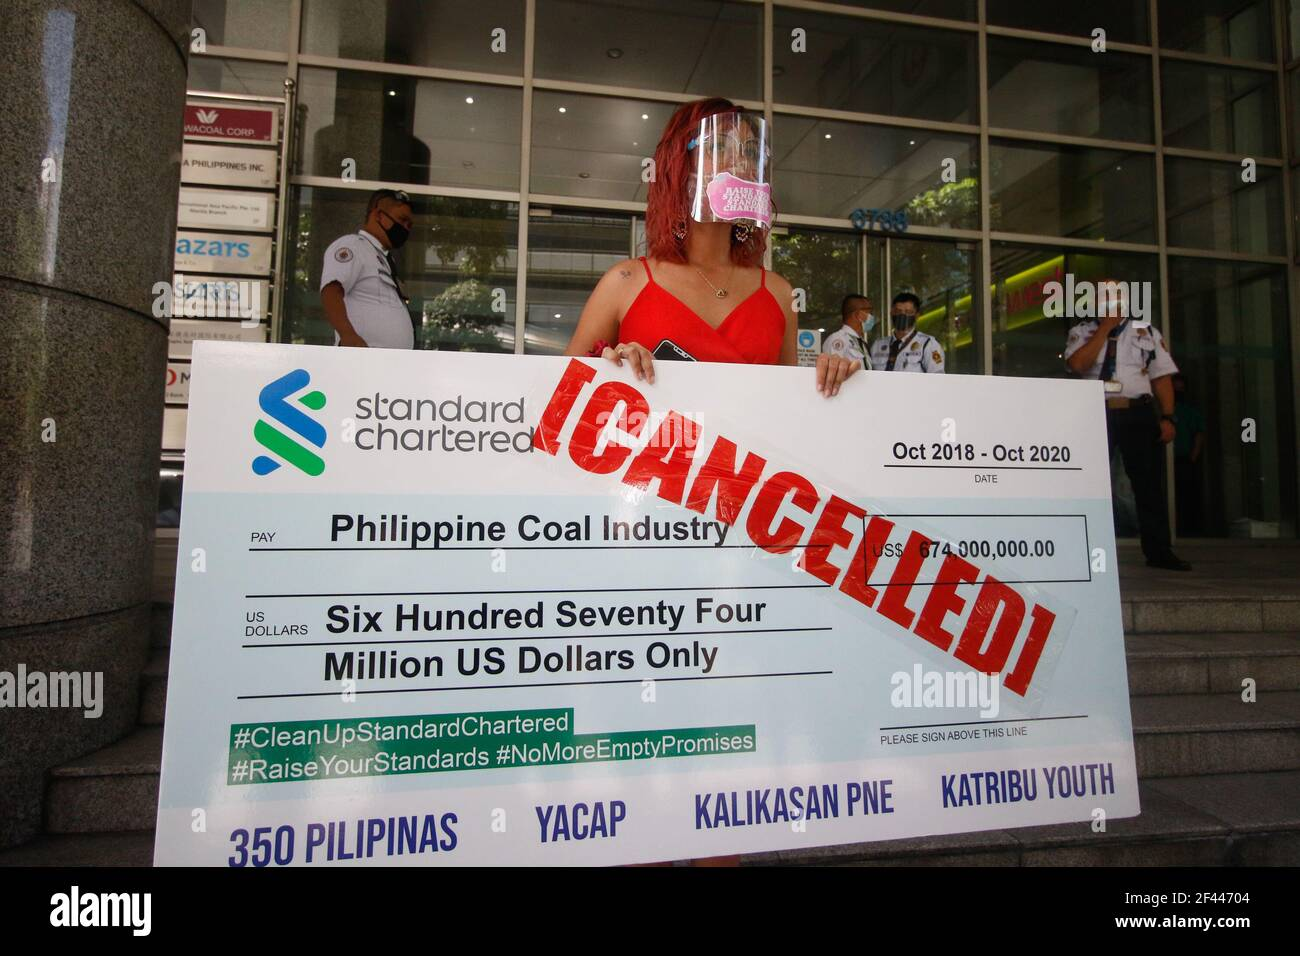 Makati City, Philippines. 19th Mar, 2021. Climate activists held a giant cancelled cheque, as they protested in front of the Standard Chartered Bank. They are calling for the bank to stop funding coal energy projects. Credit: Majority World CIC/Alamy Live News Stock Photo